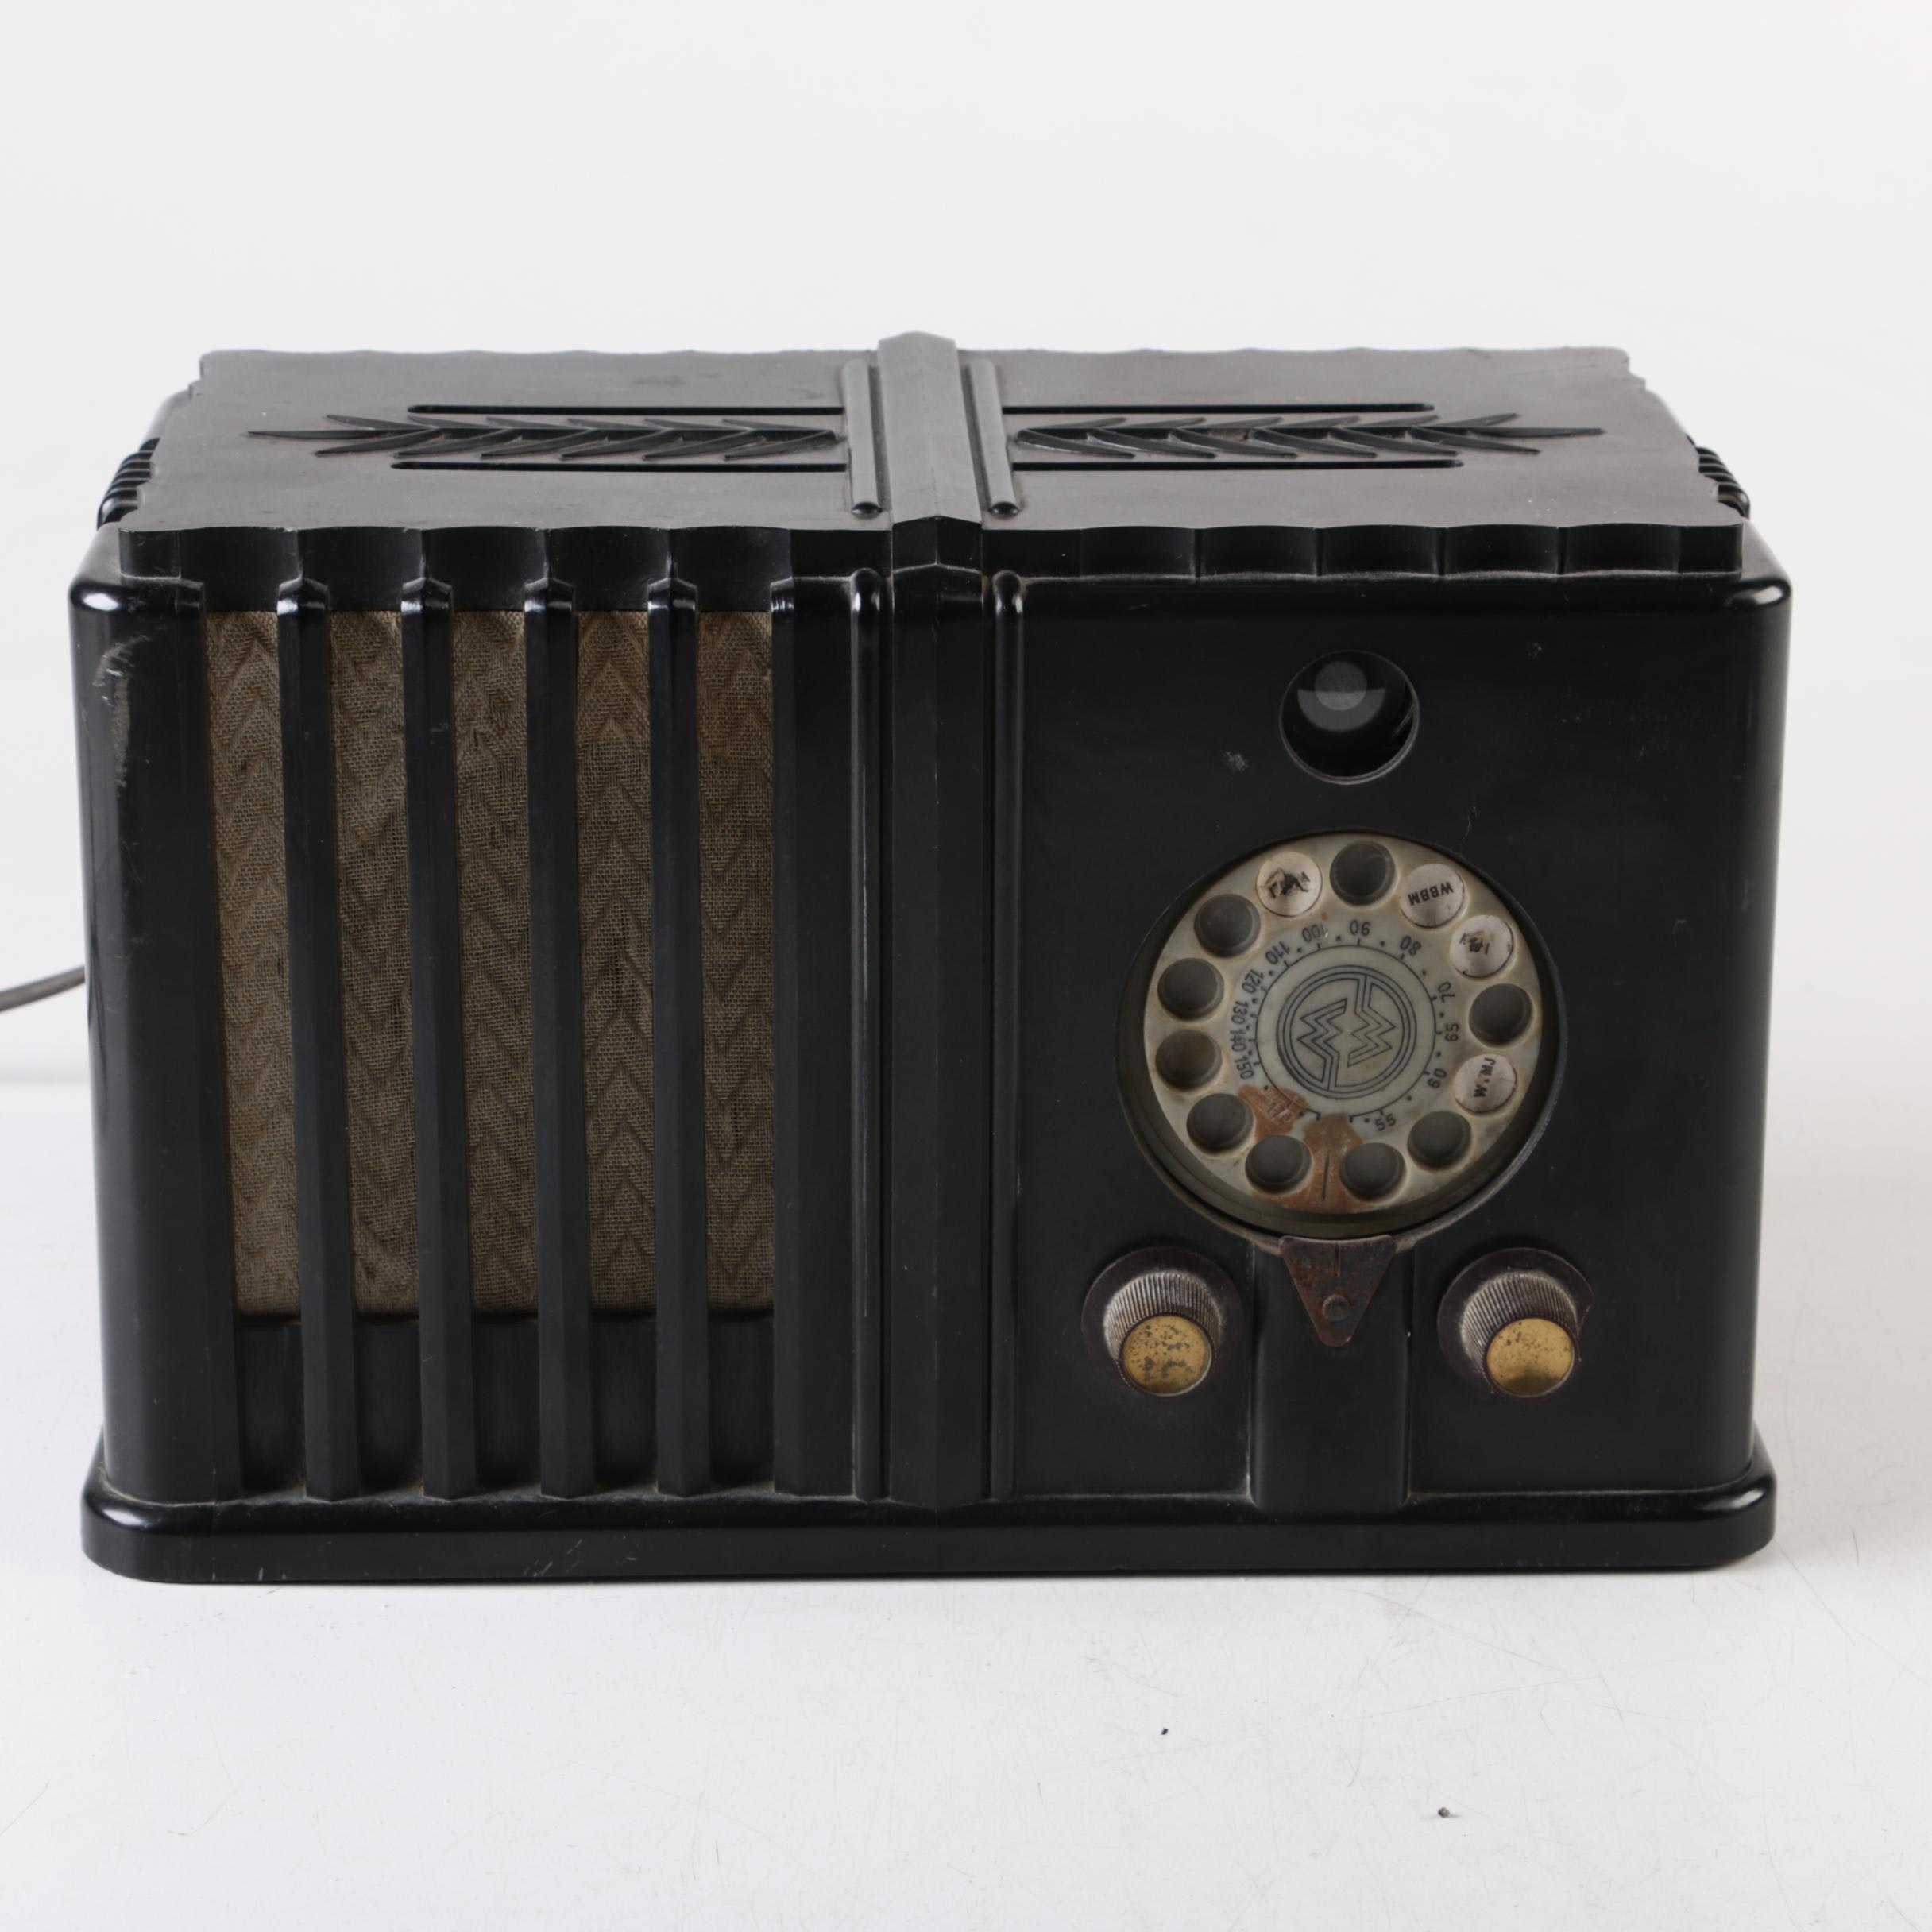 C. 1930s Montgomery Wards Airline Model 62-476 Tabletop Radio